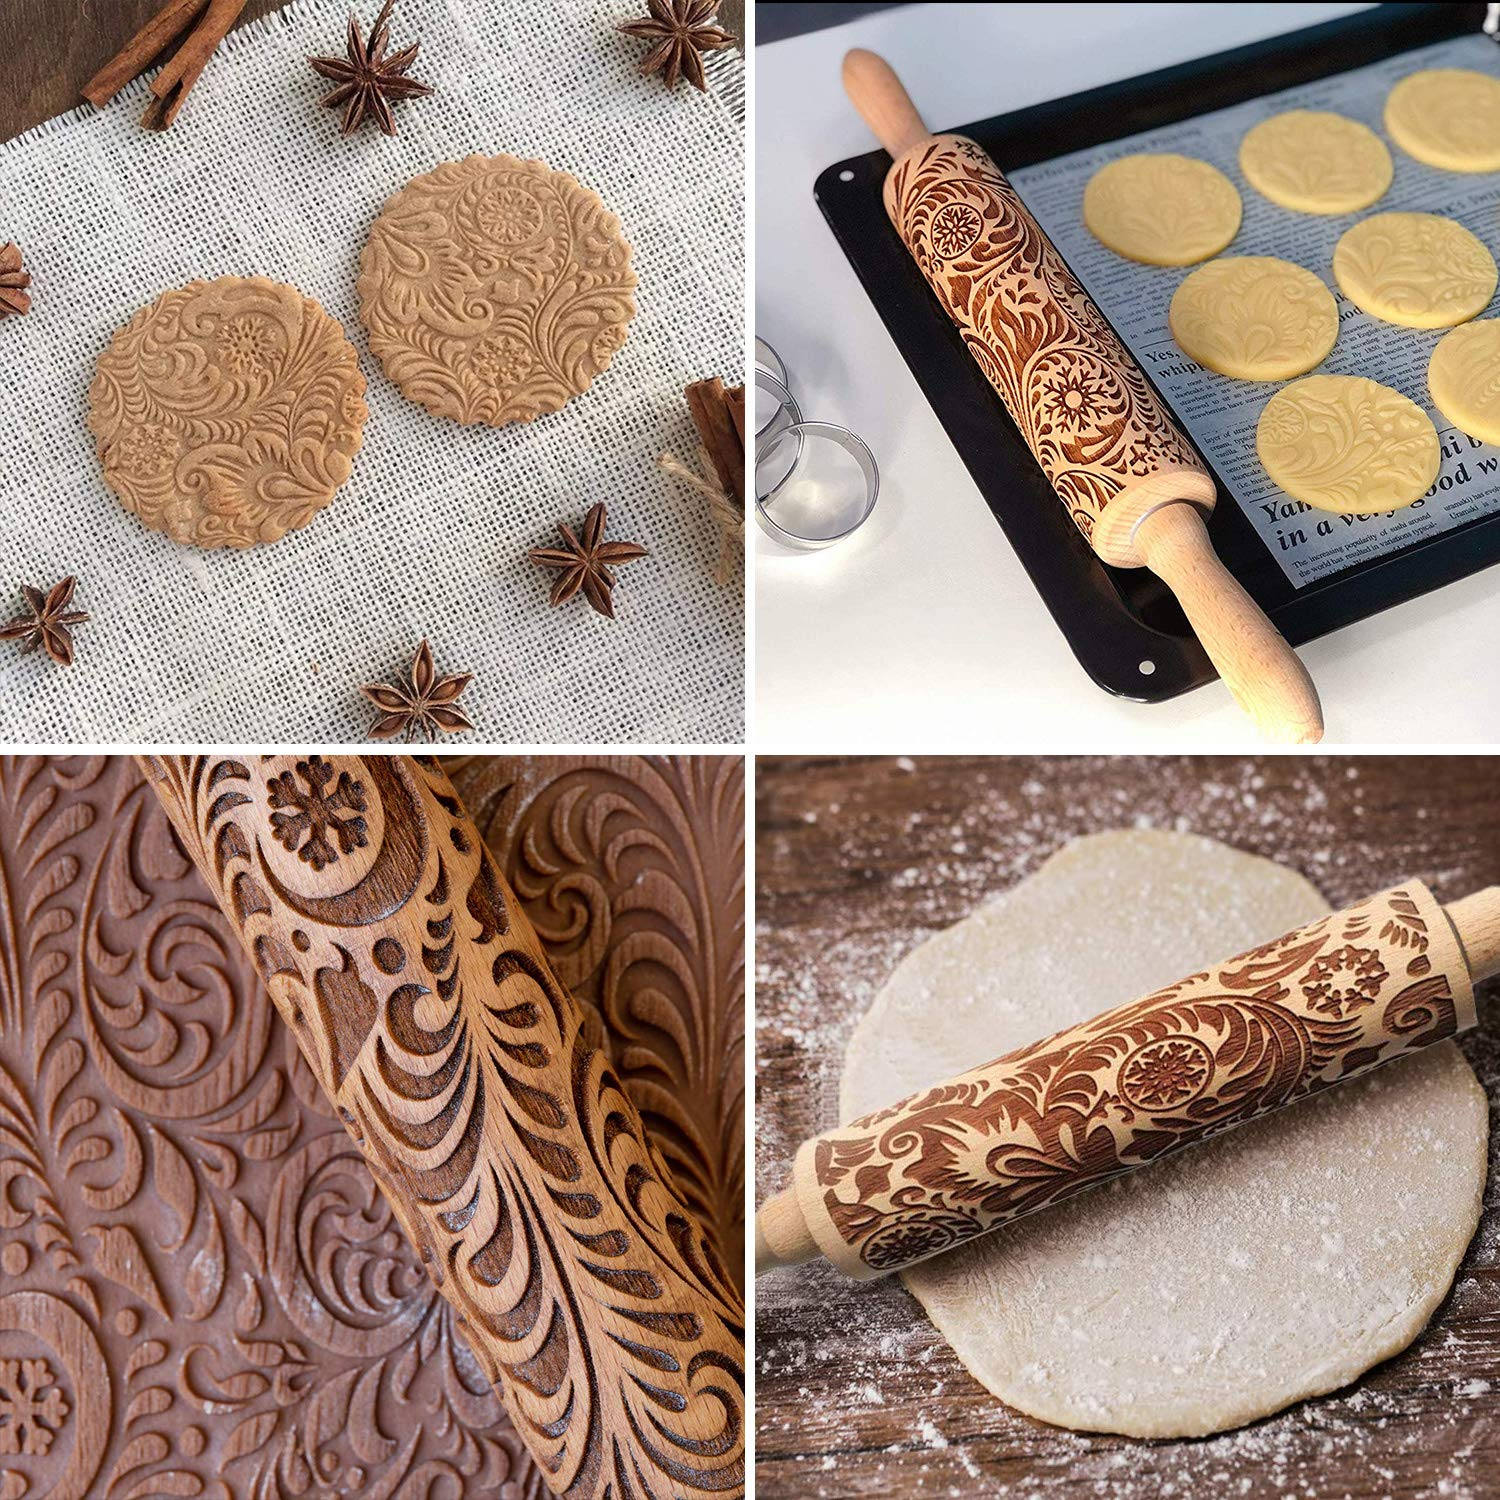 Christmas Rolling pin Embossed 3D Patterned Rolling pin Engraved with Pattern Perfect for Baking with Kids Crusts Dough /& Fondant Cookies Pies /& Pastry Clay Crafts